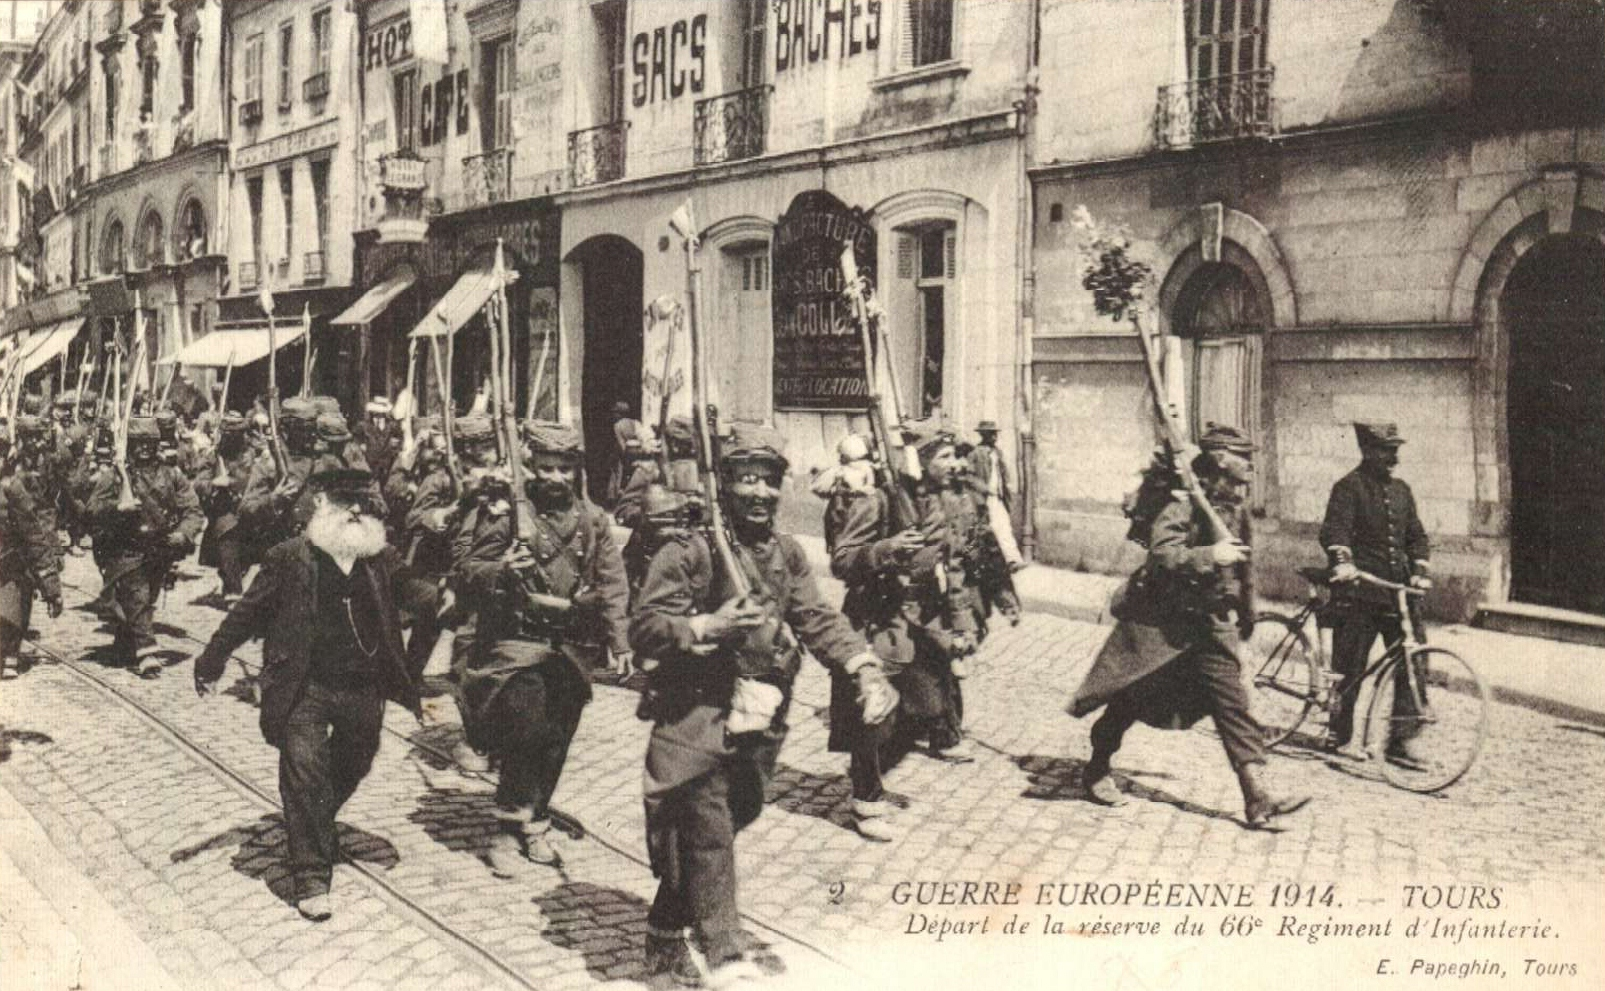 Columns from the 66th Infantry Regiment marching with little flags or flowers in the barrel of their gun, towards Tours station on August 5th, 1914